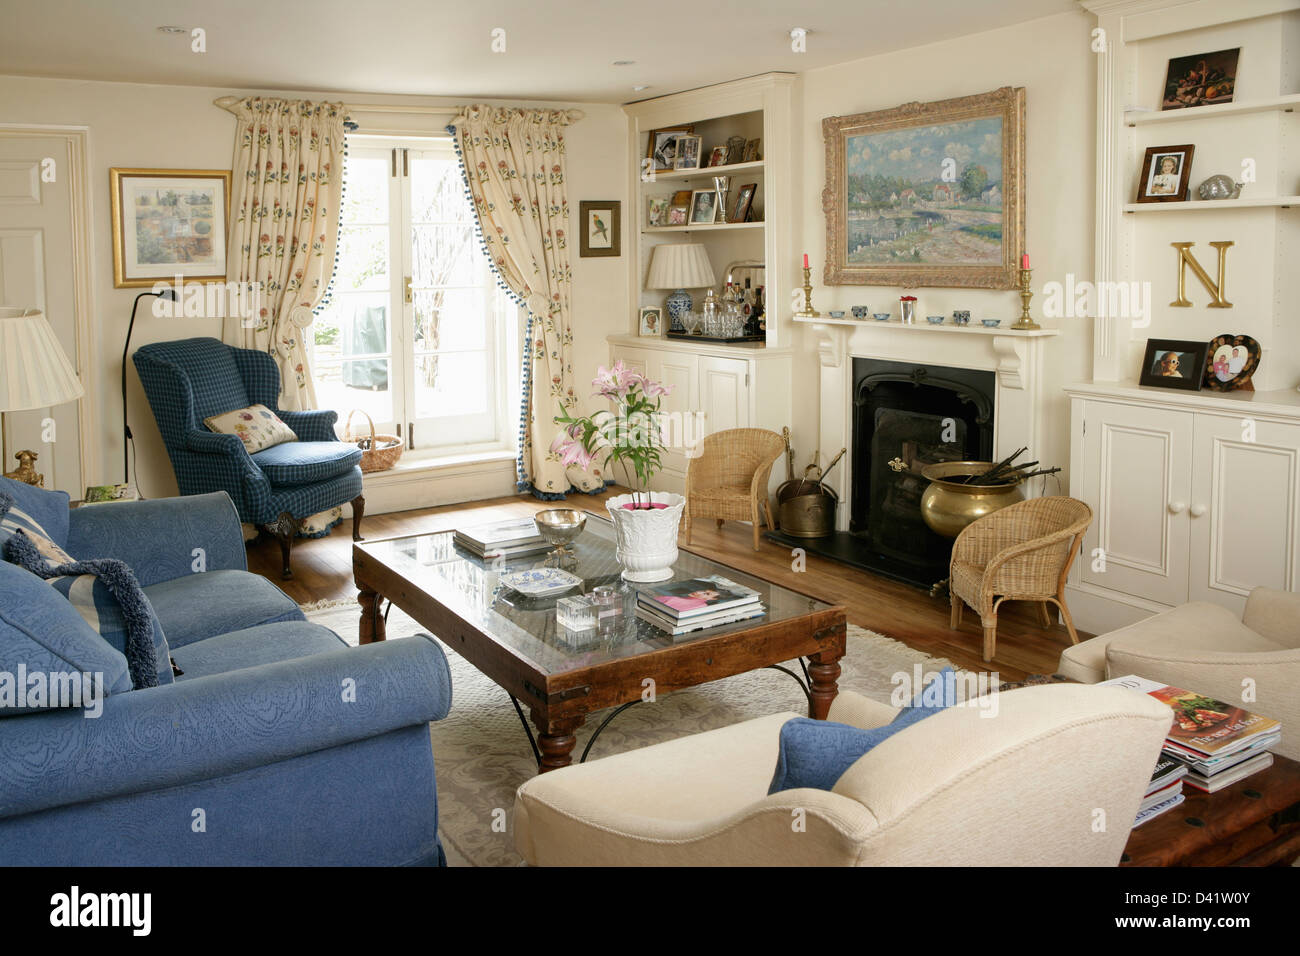 children s living room chairs lower back chair support 39s wicker on either side of fireplace in